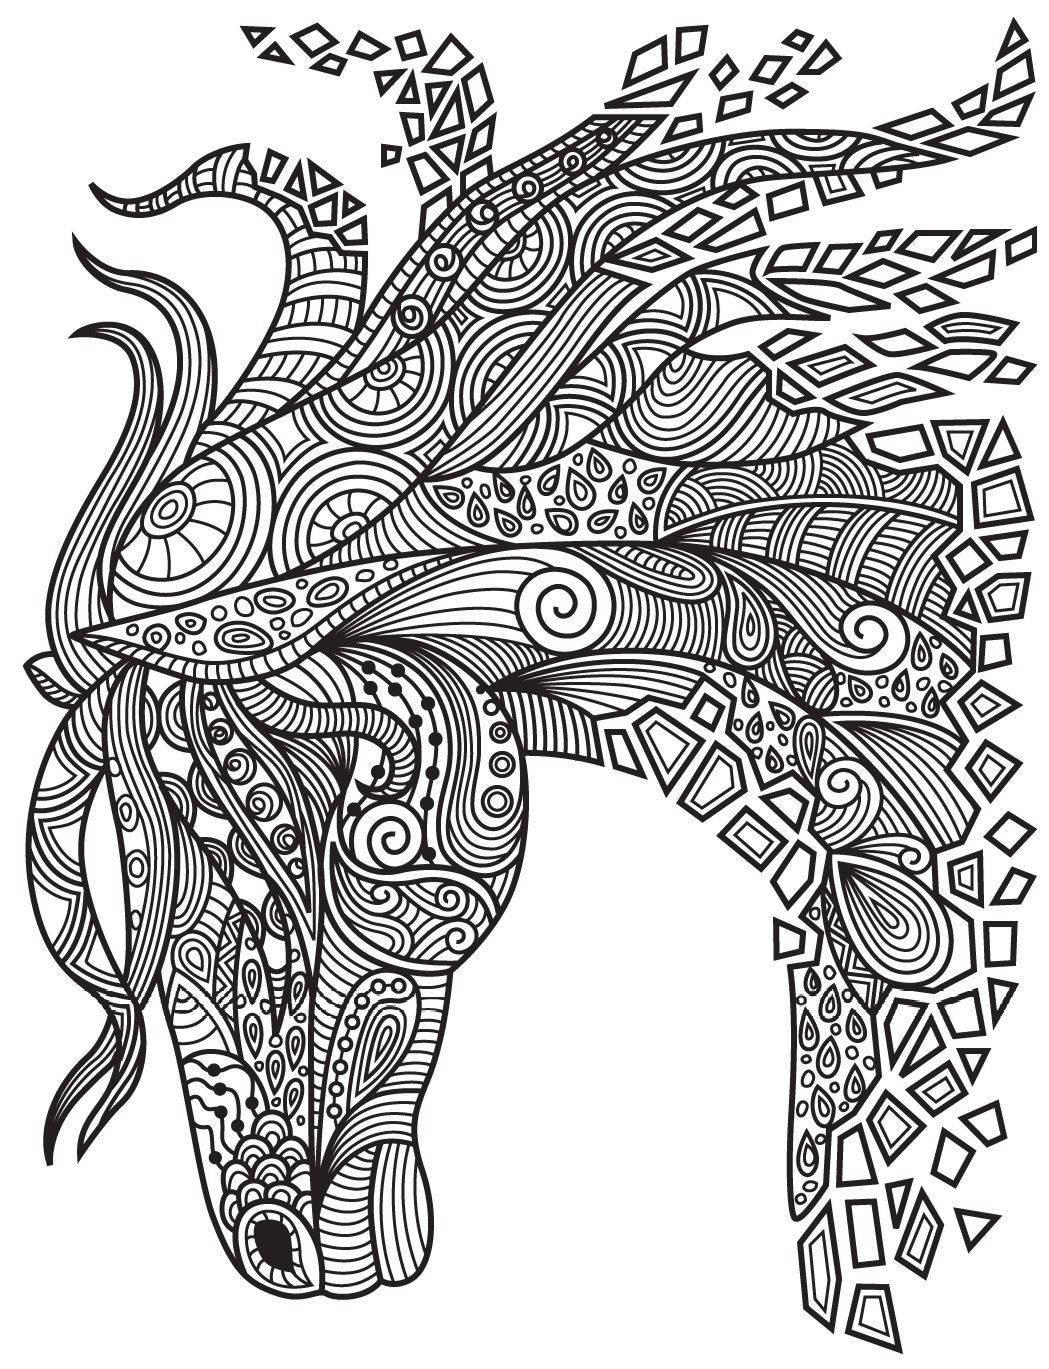 1049x1369 horses colorish coloring book app for adults mandala relax